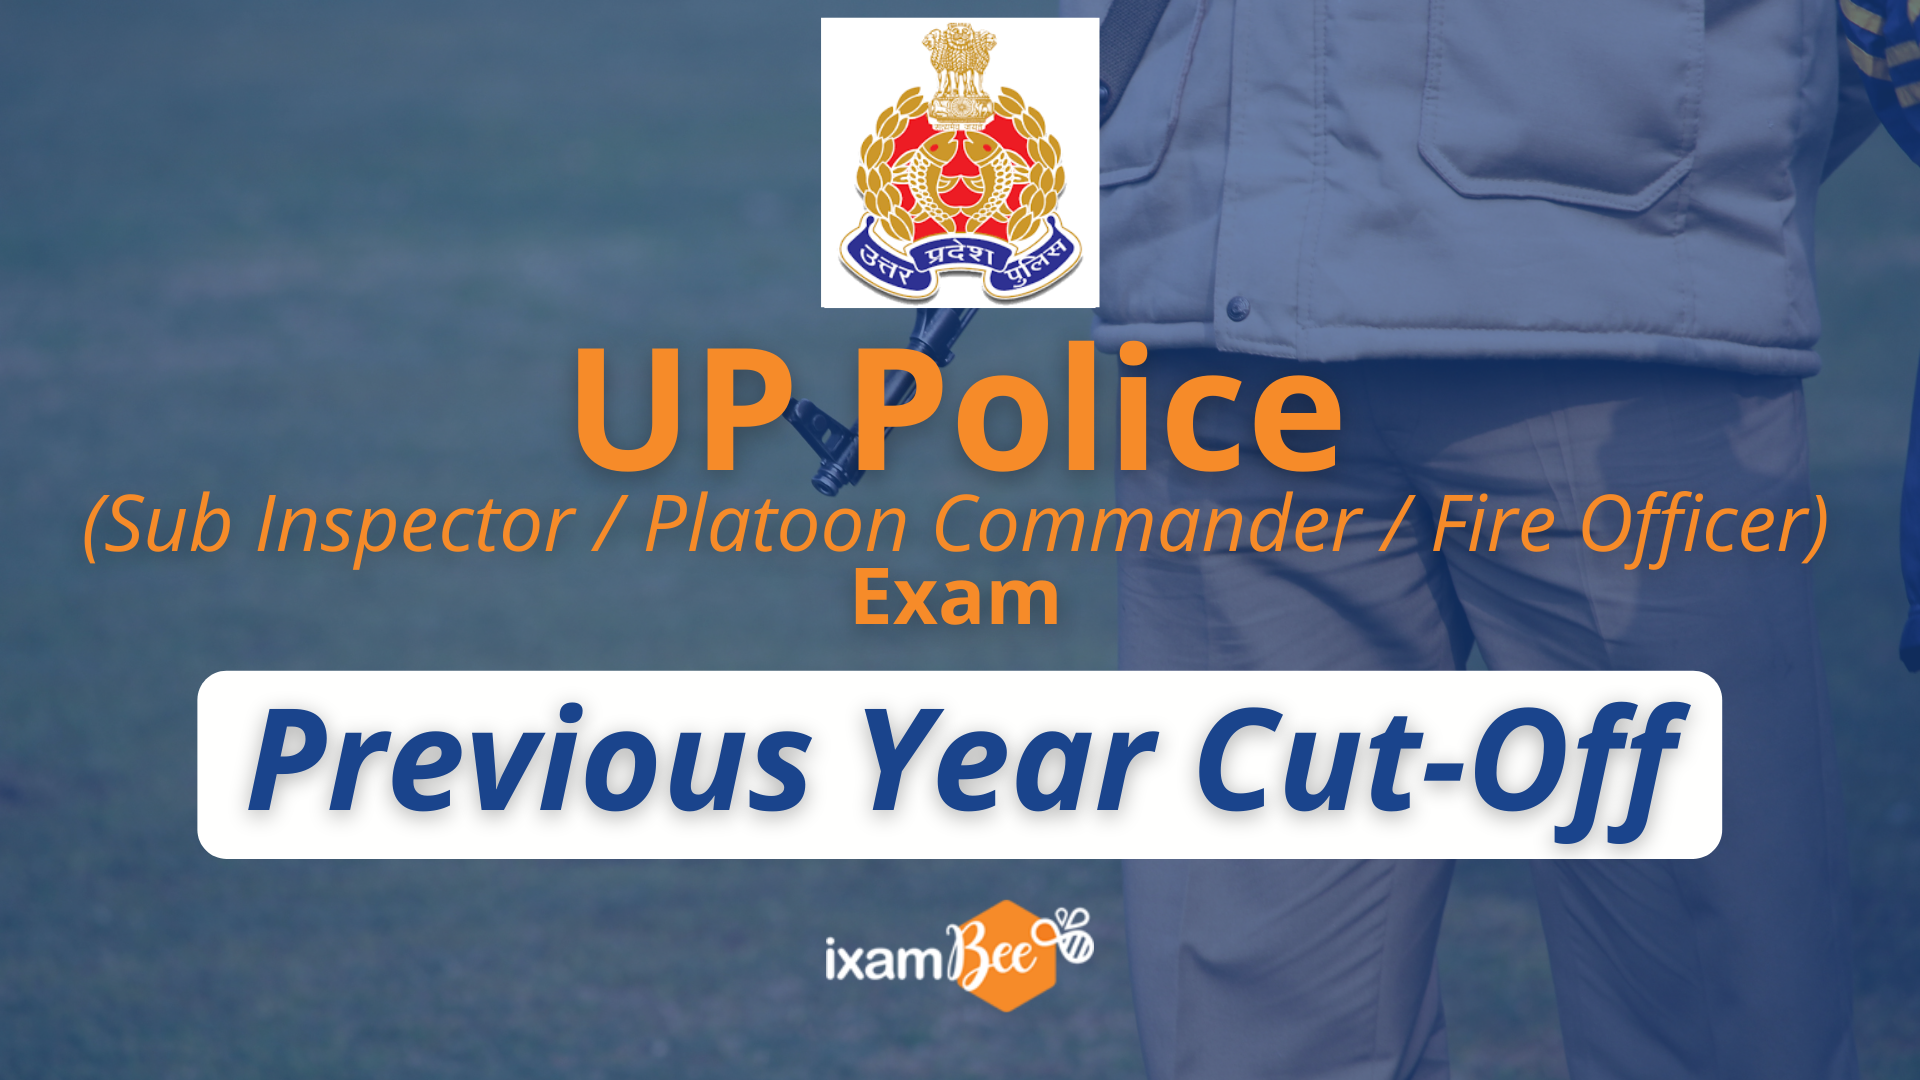 UP Police (Sub Inspector, Platoon Commander, and Fire Officer) Previous Year Cut Off